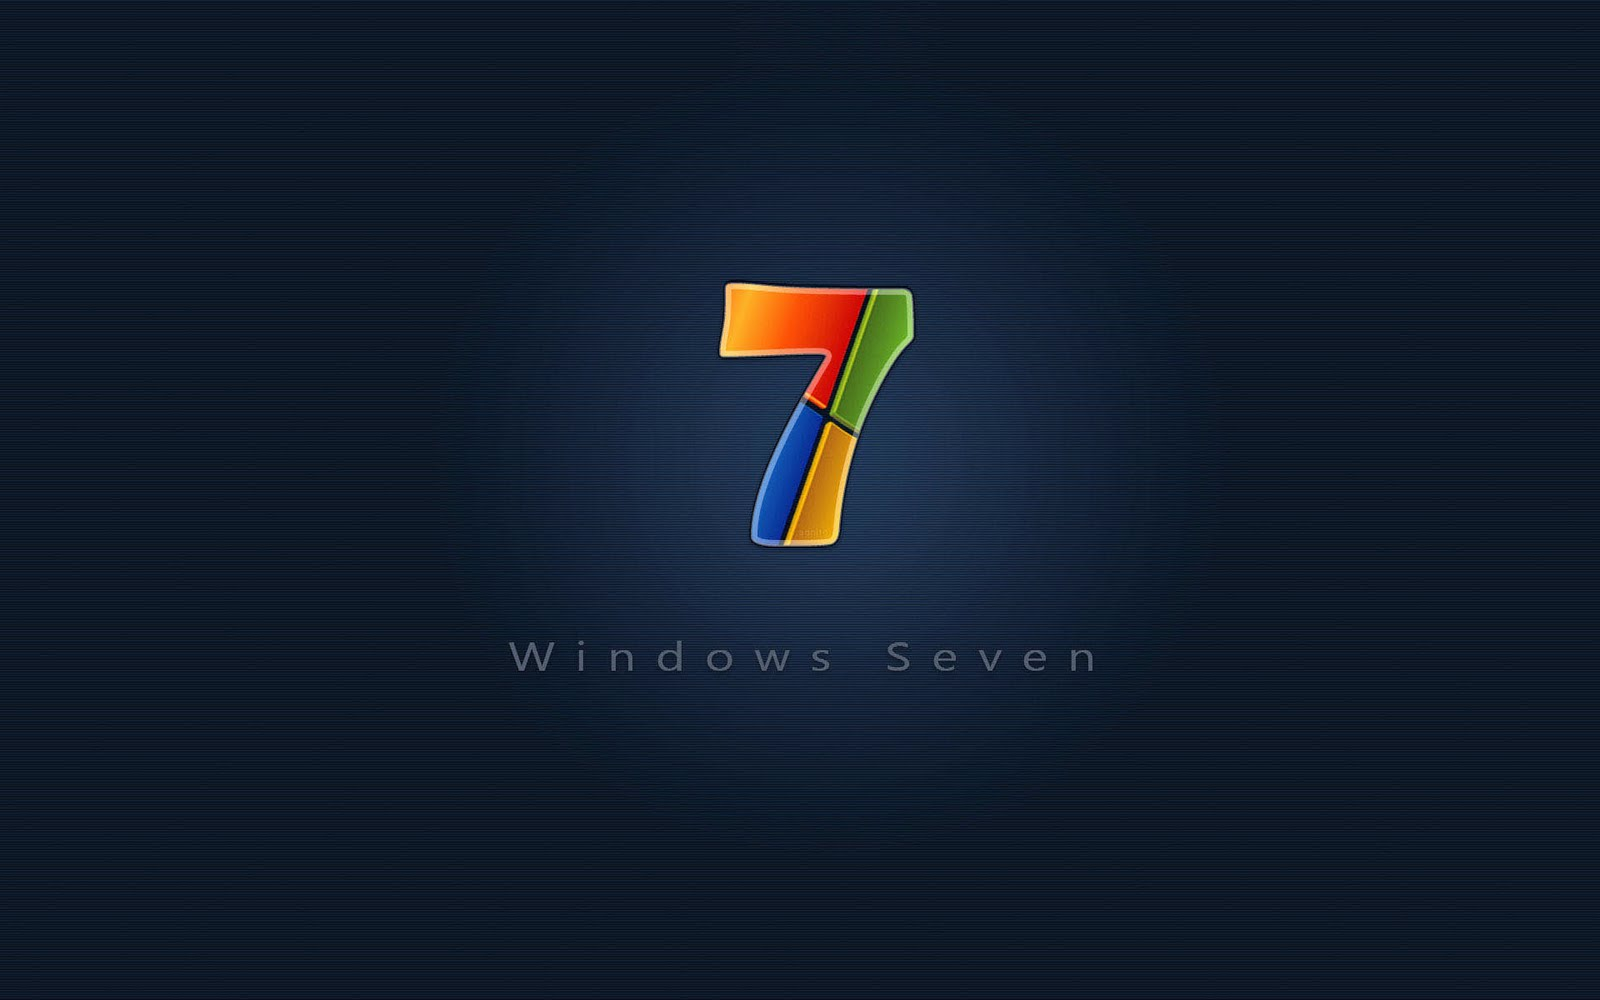 windows seven 7 logo wallpaper part6 olympics news